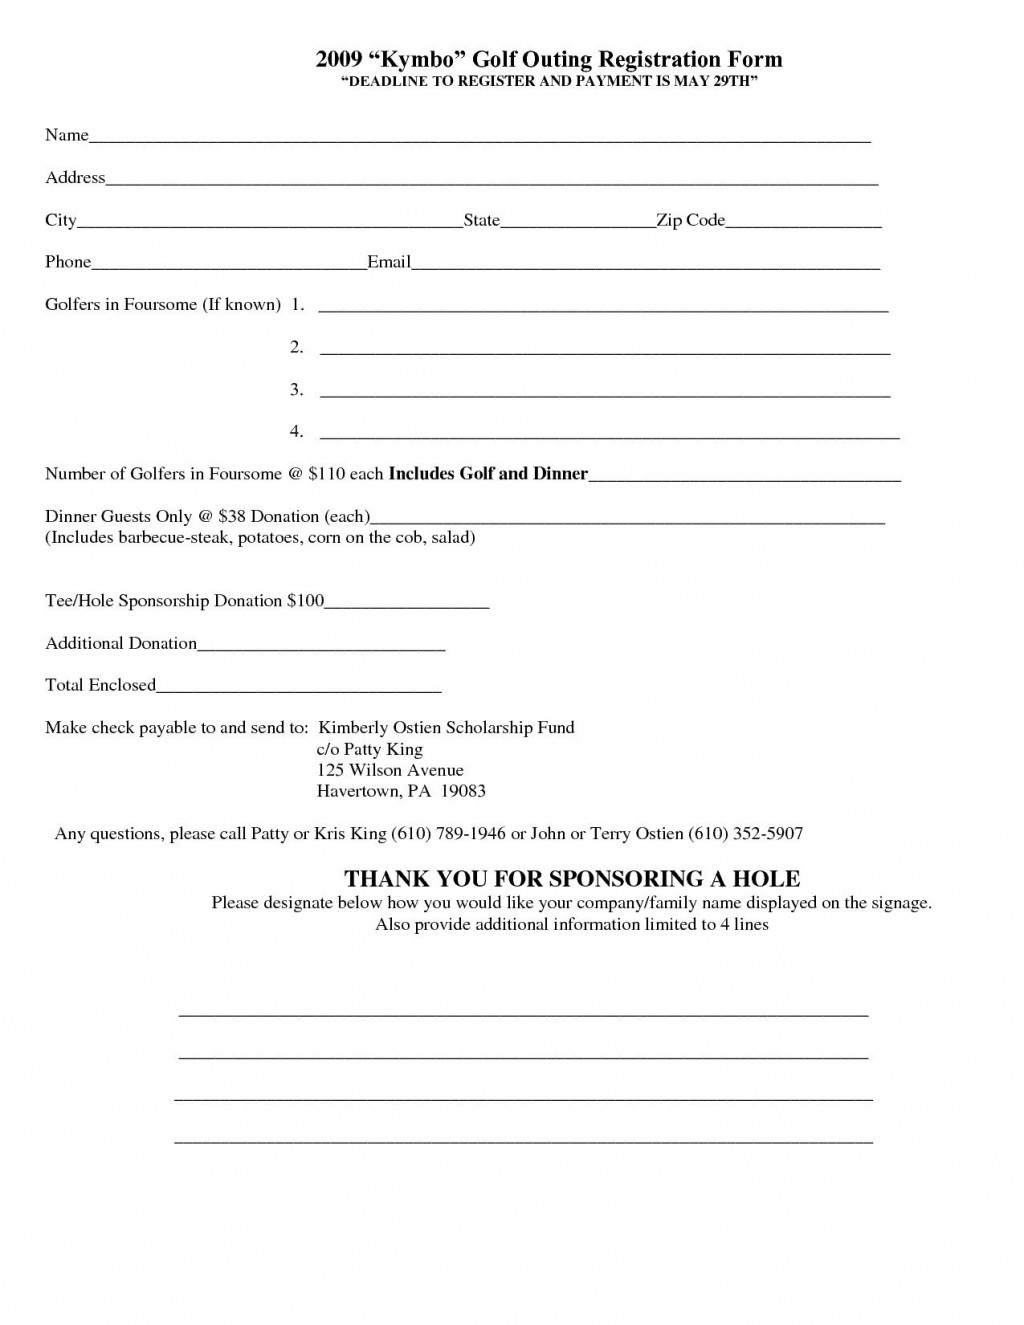 008 Awful Registration Form Template Word Idea  Conference FreeLarge